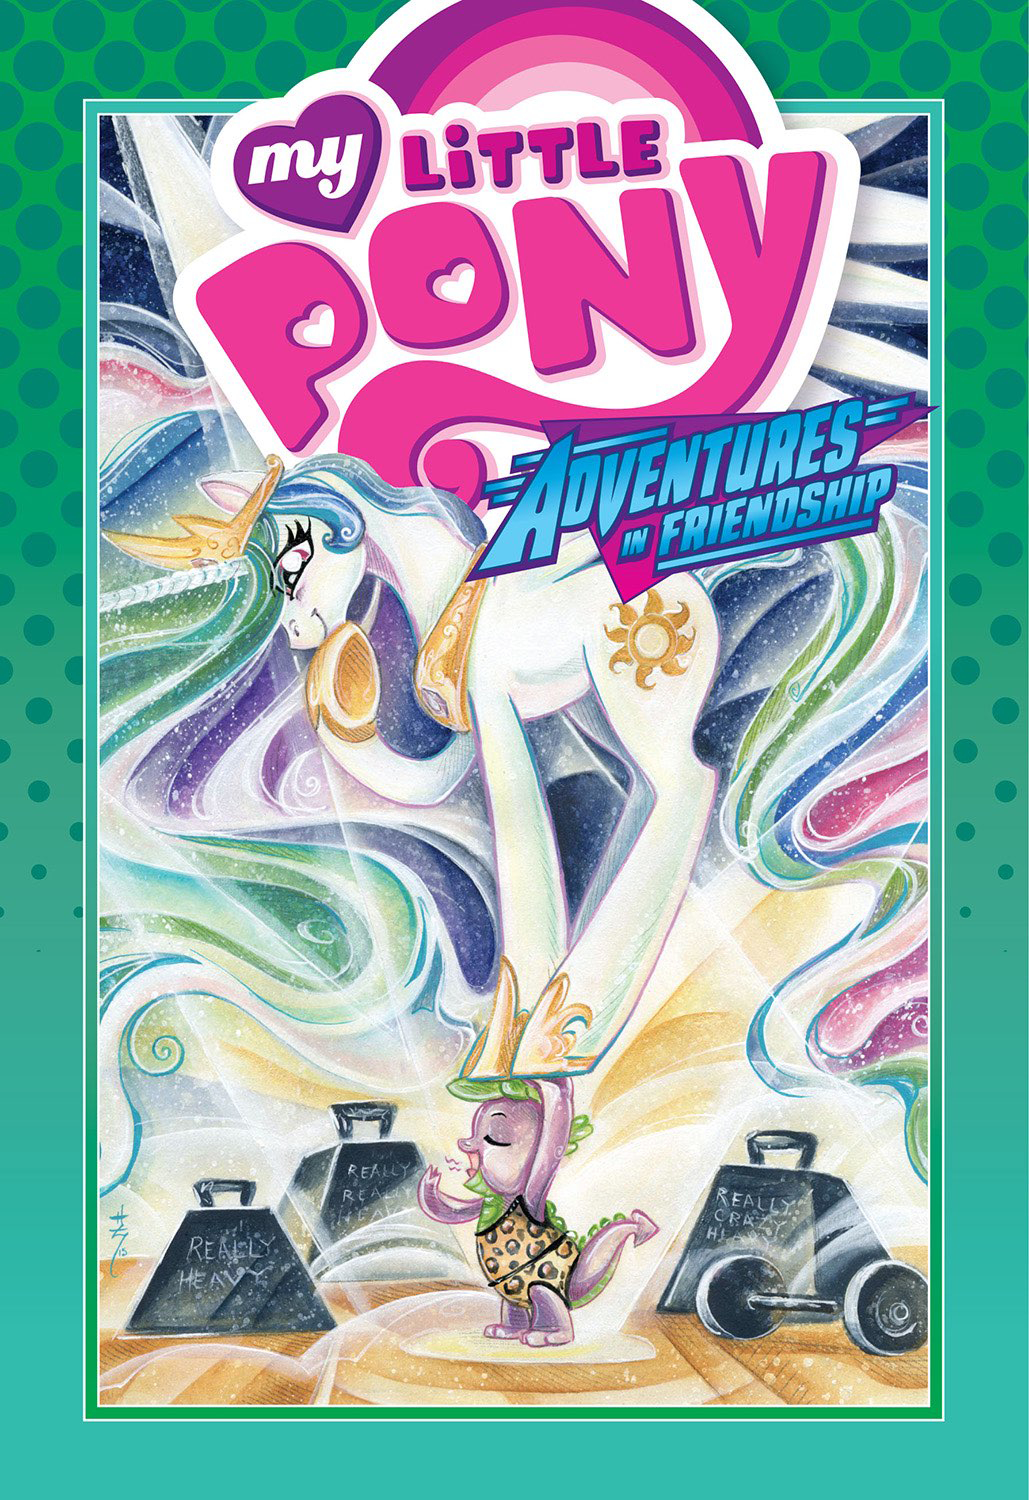 MY LITTLE PONY ADVENTURES IN FRIENDSHIP HC VOL 03